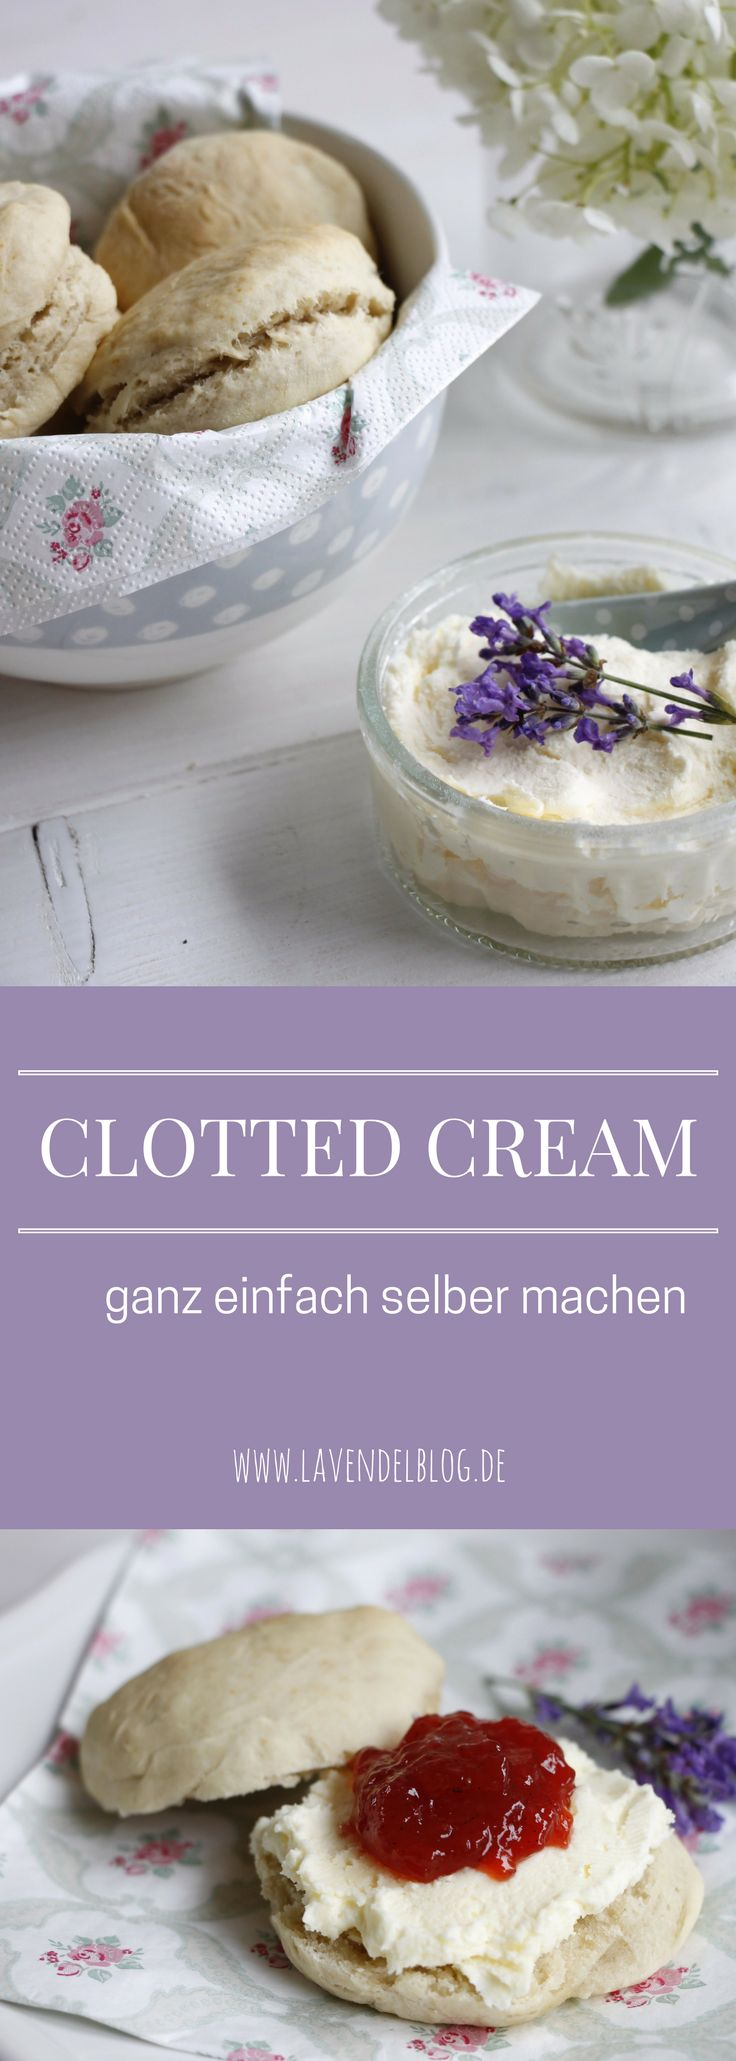 die besten 25 clotted cream rezept ideen auf pinterest. Black Bedroom Furniture Sets. Home Design Ideas